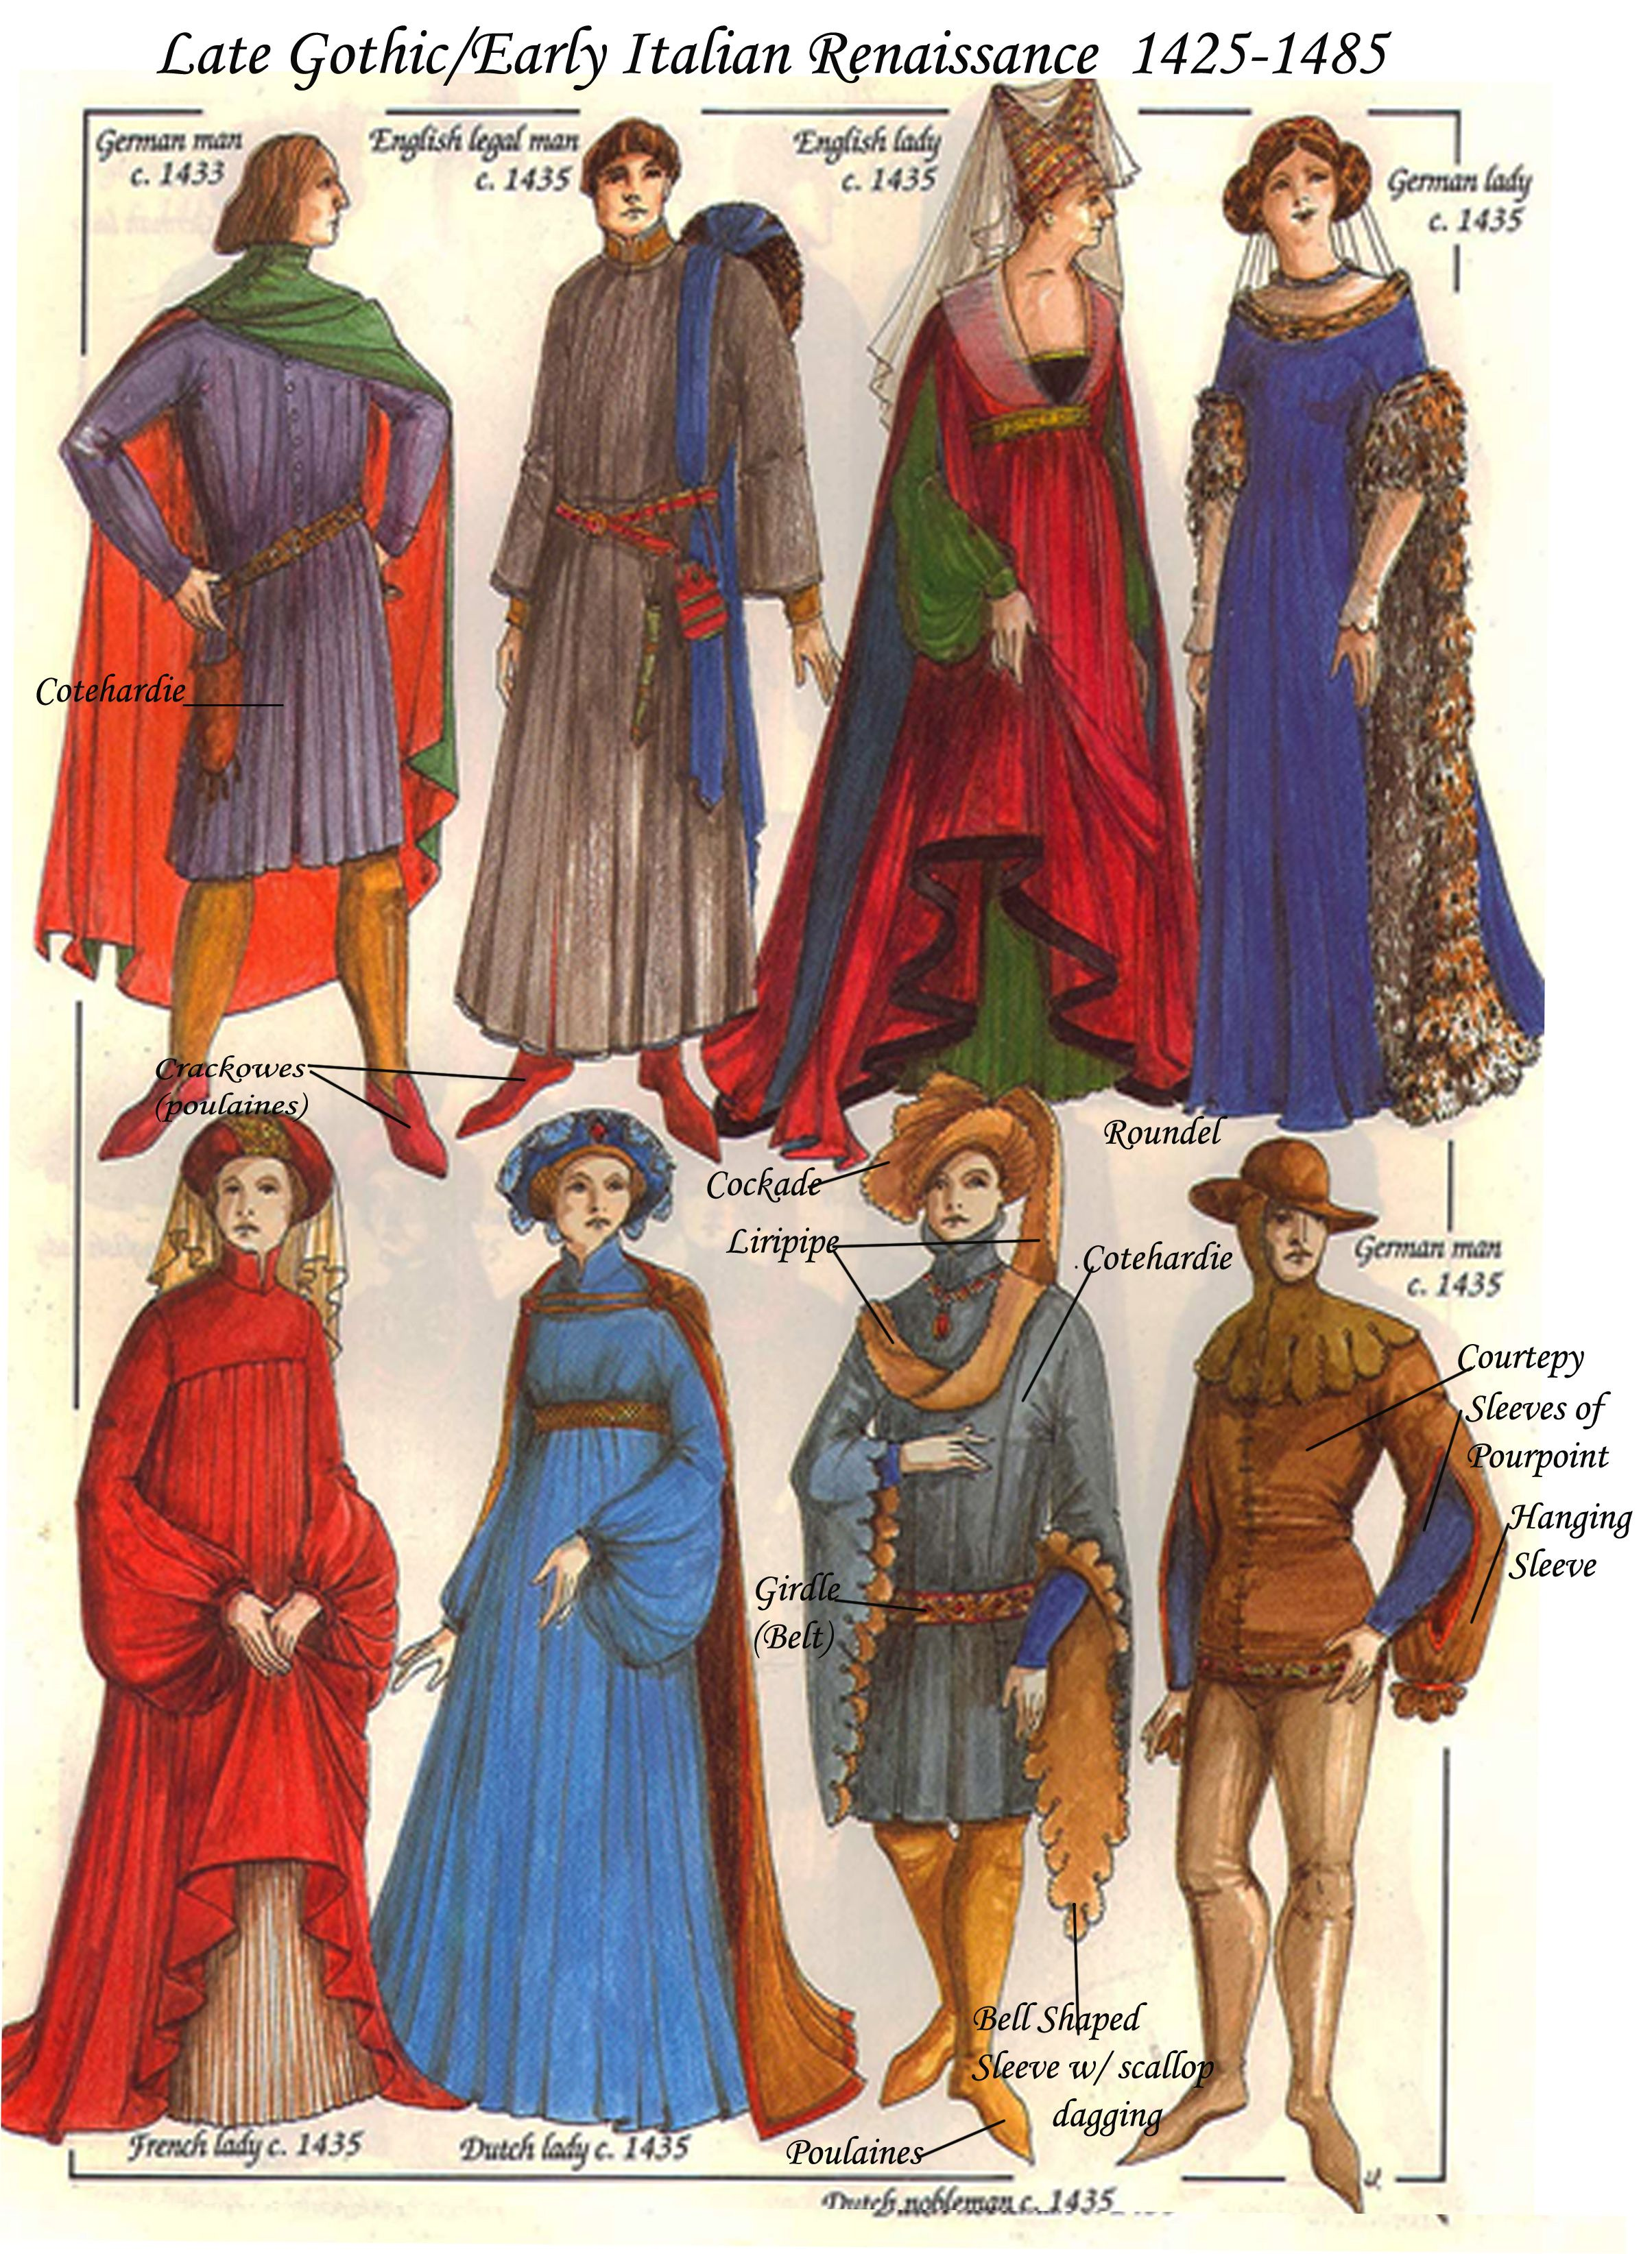 Includes terms for identifying clothing pieces [Late gothic/early renaissance Italian -- Costume History 1425-1485]